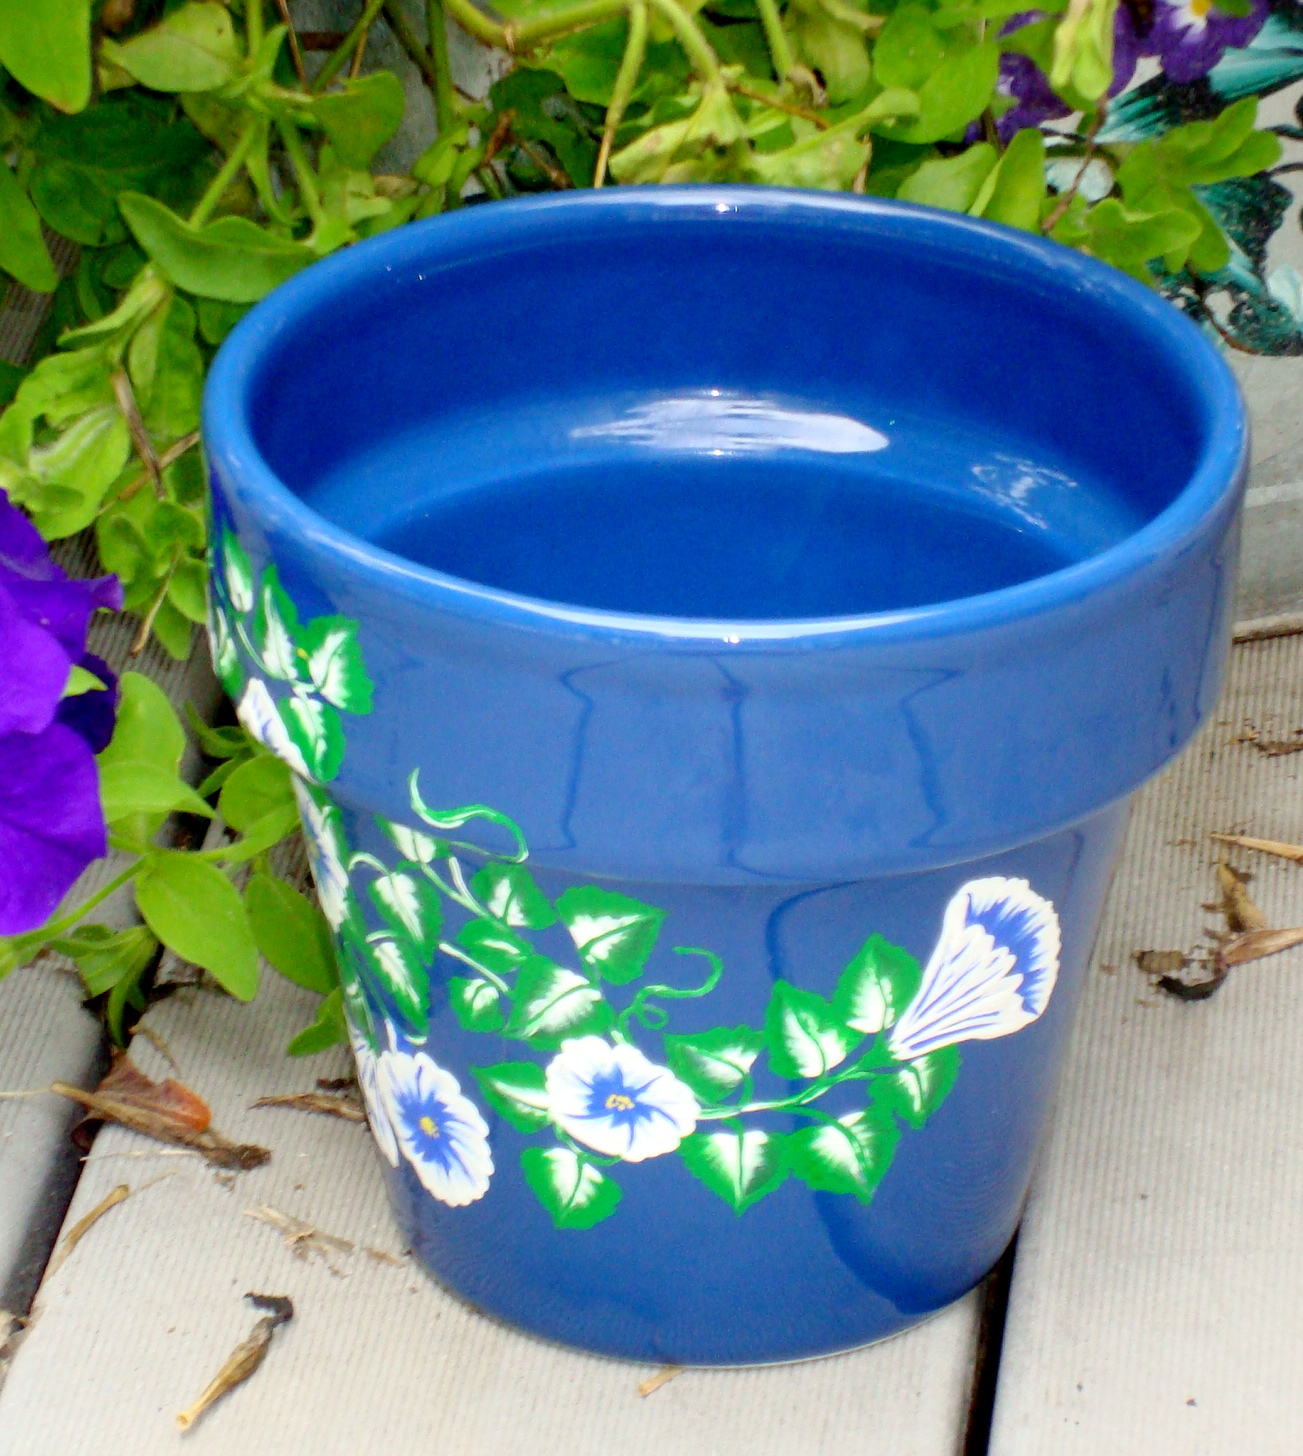 blue flower pot/ planter with blue and white flowers on luulla